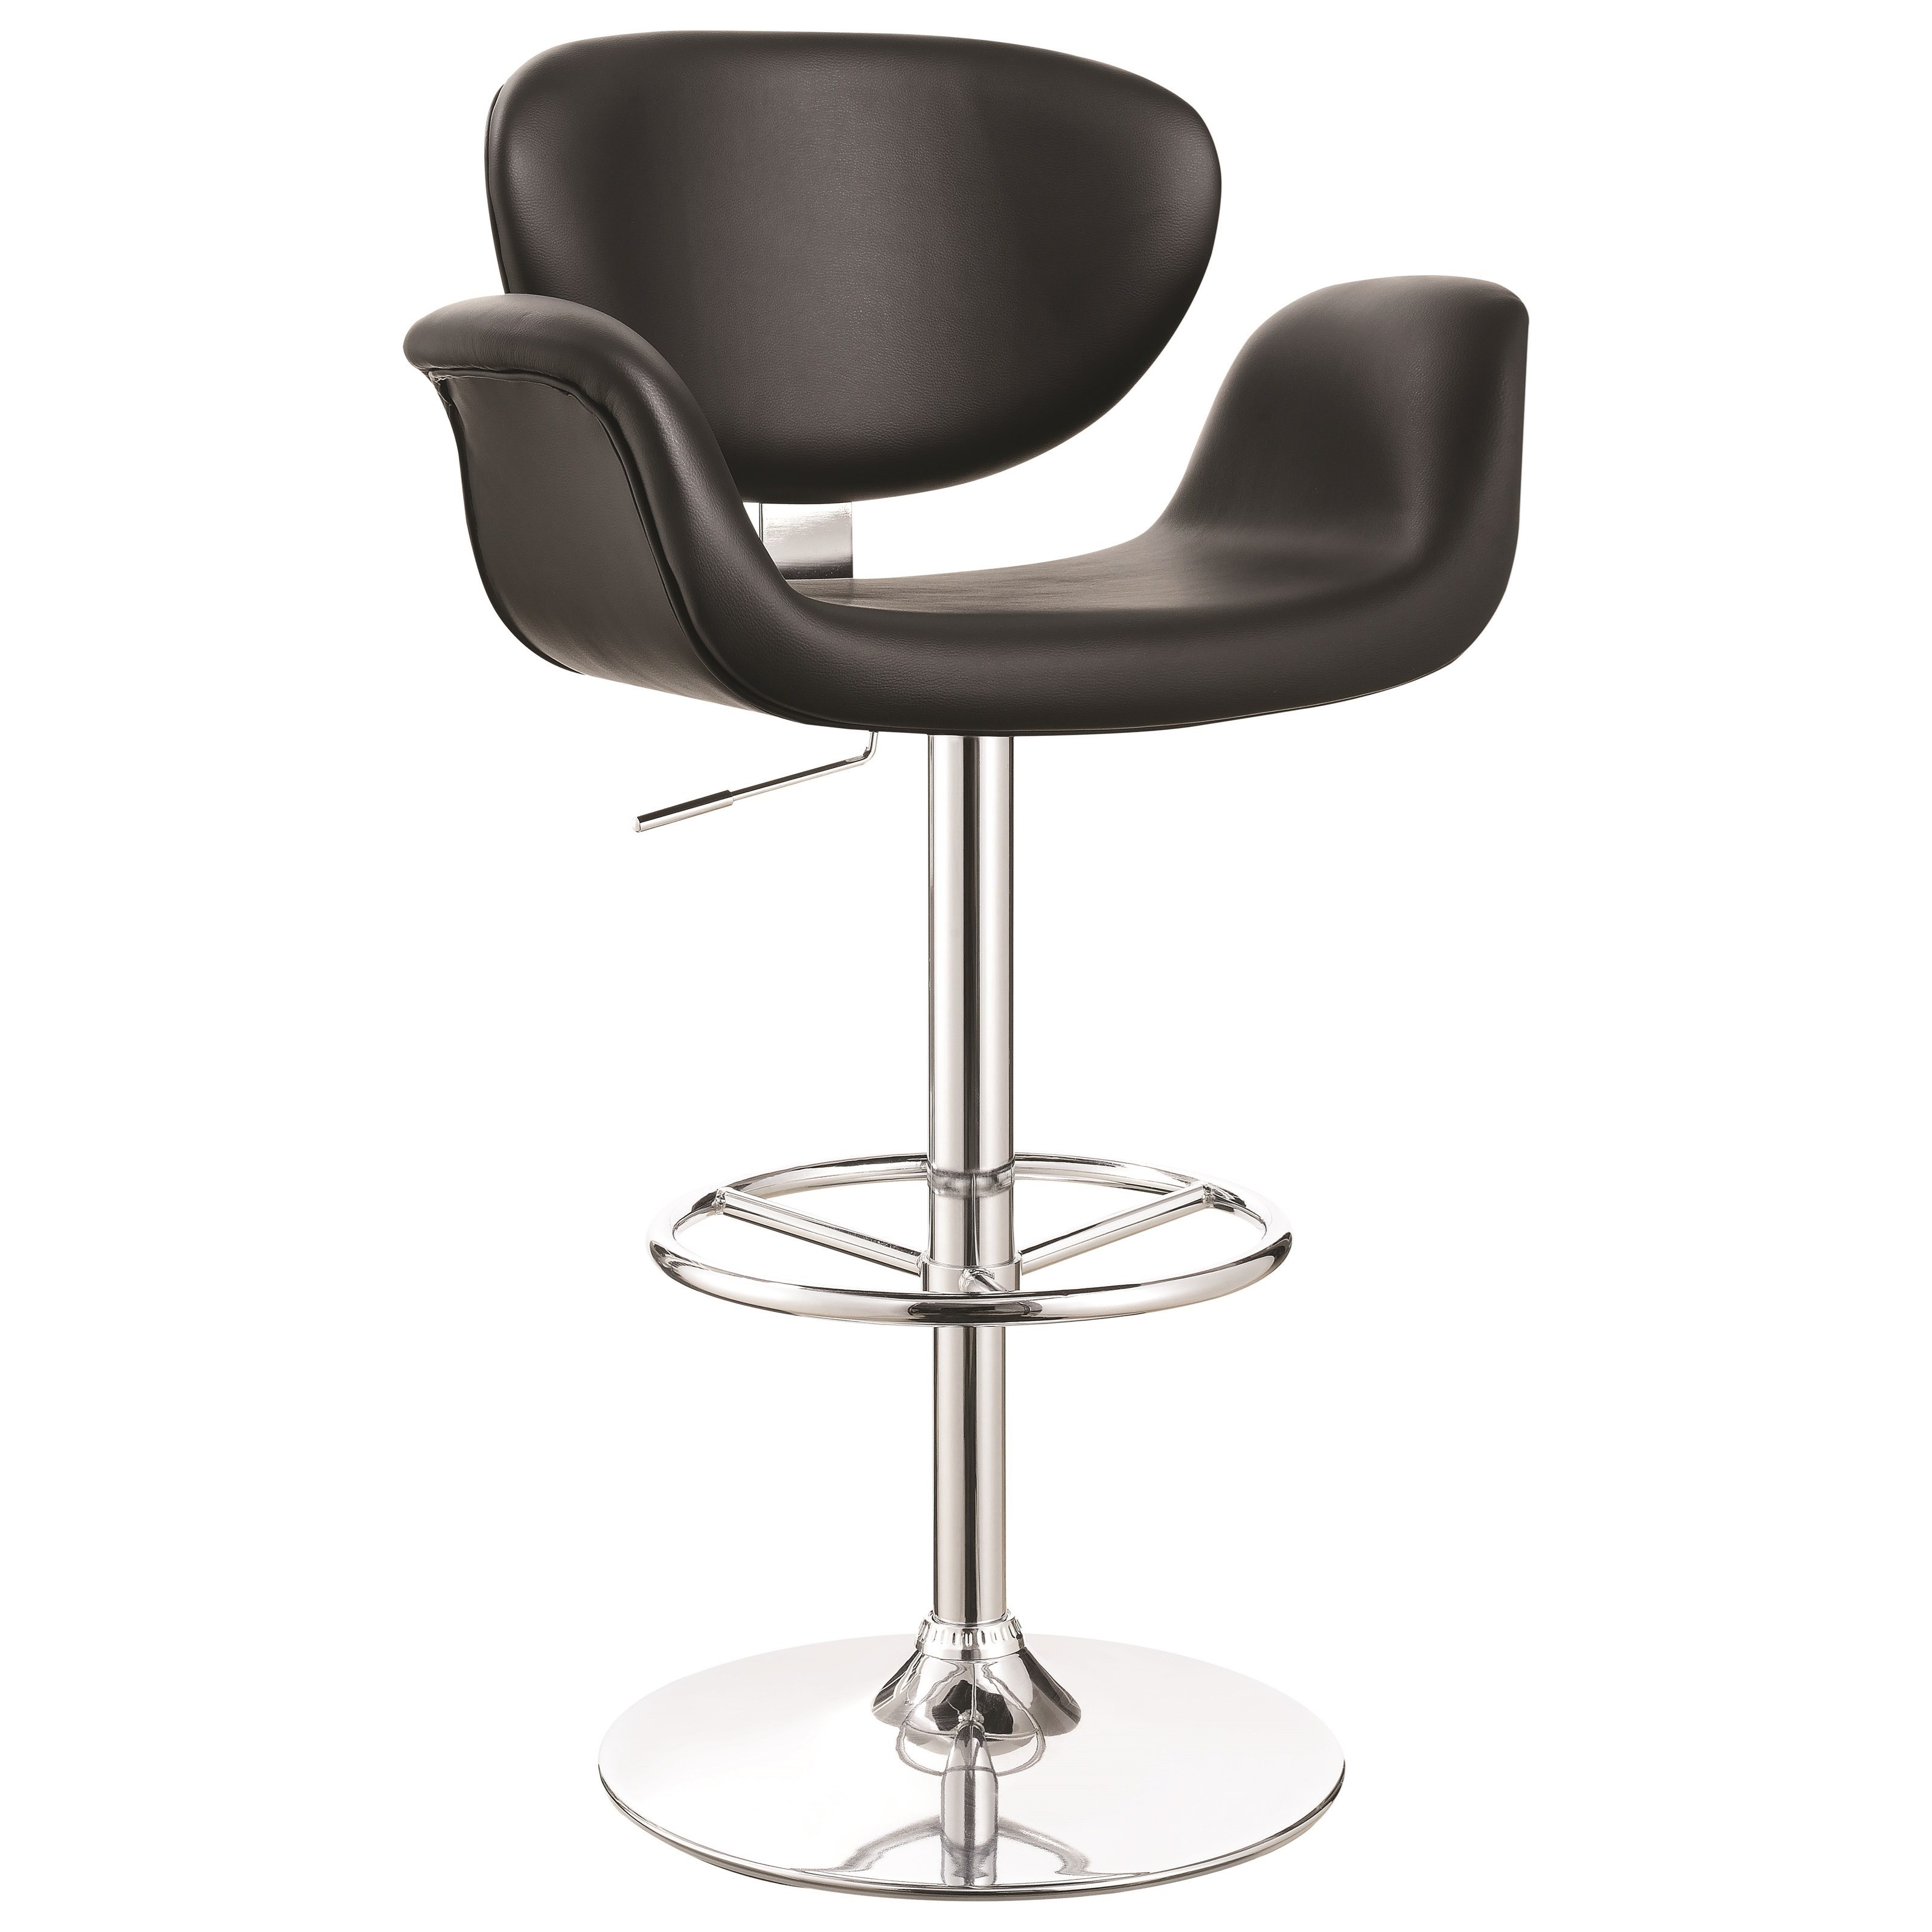 Coaster Dining Chairs and Bar Stools Bar Stool - Item Number: 100613